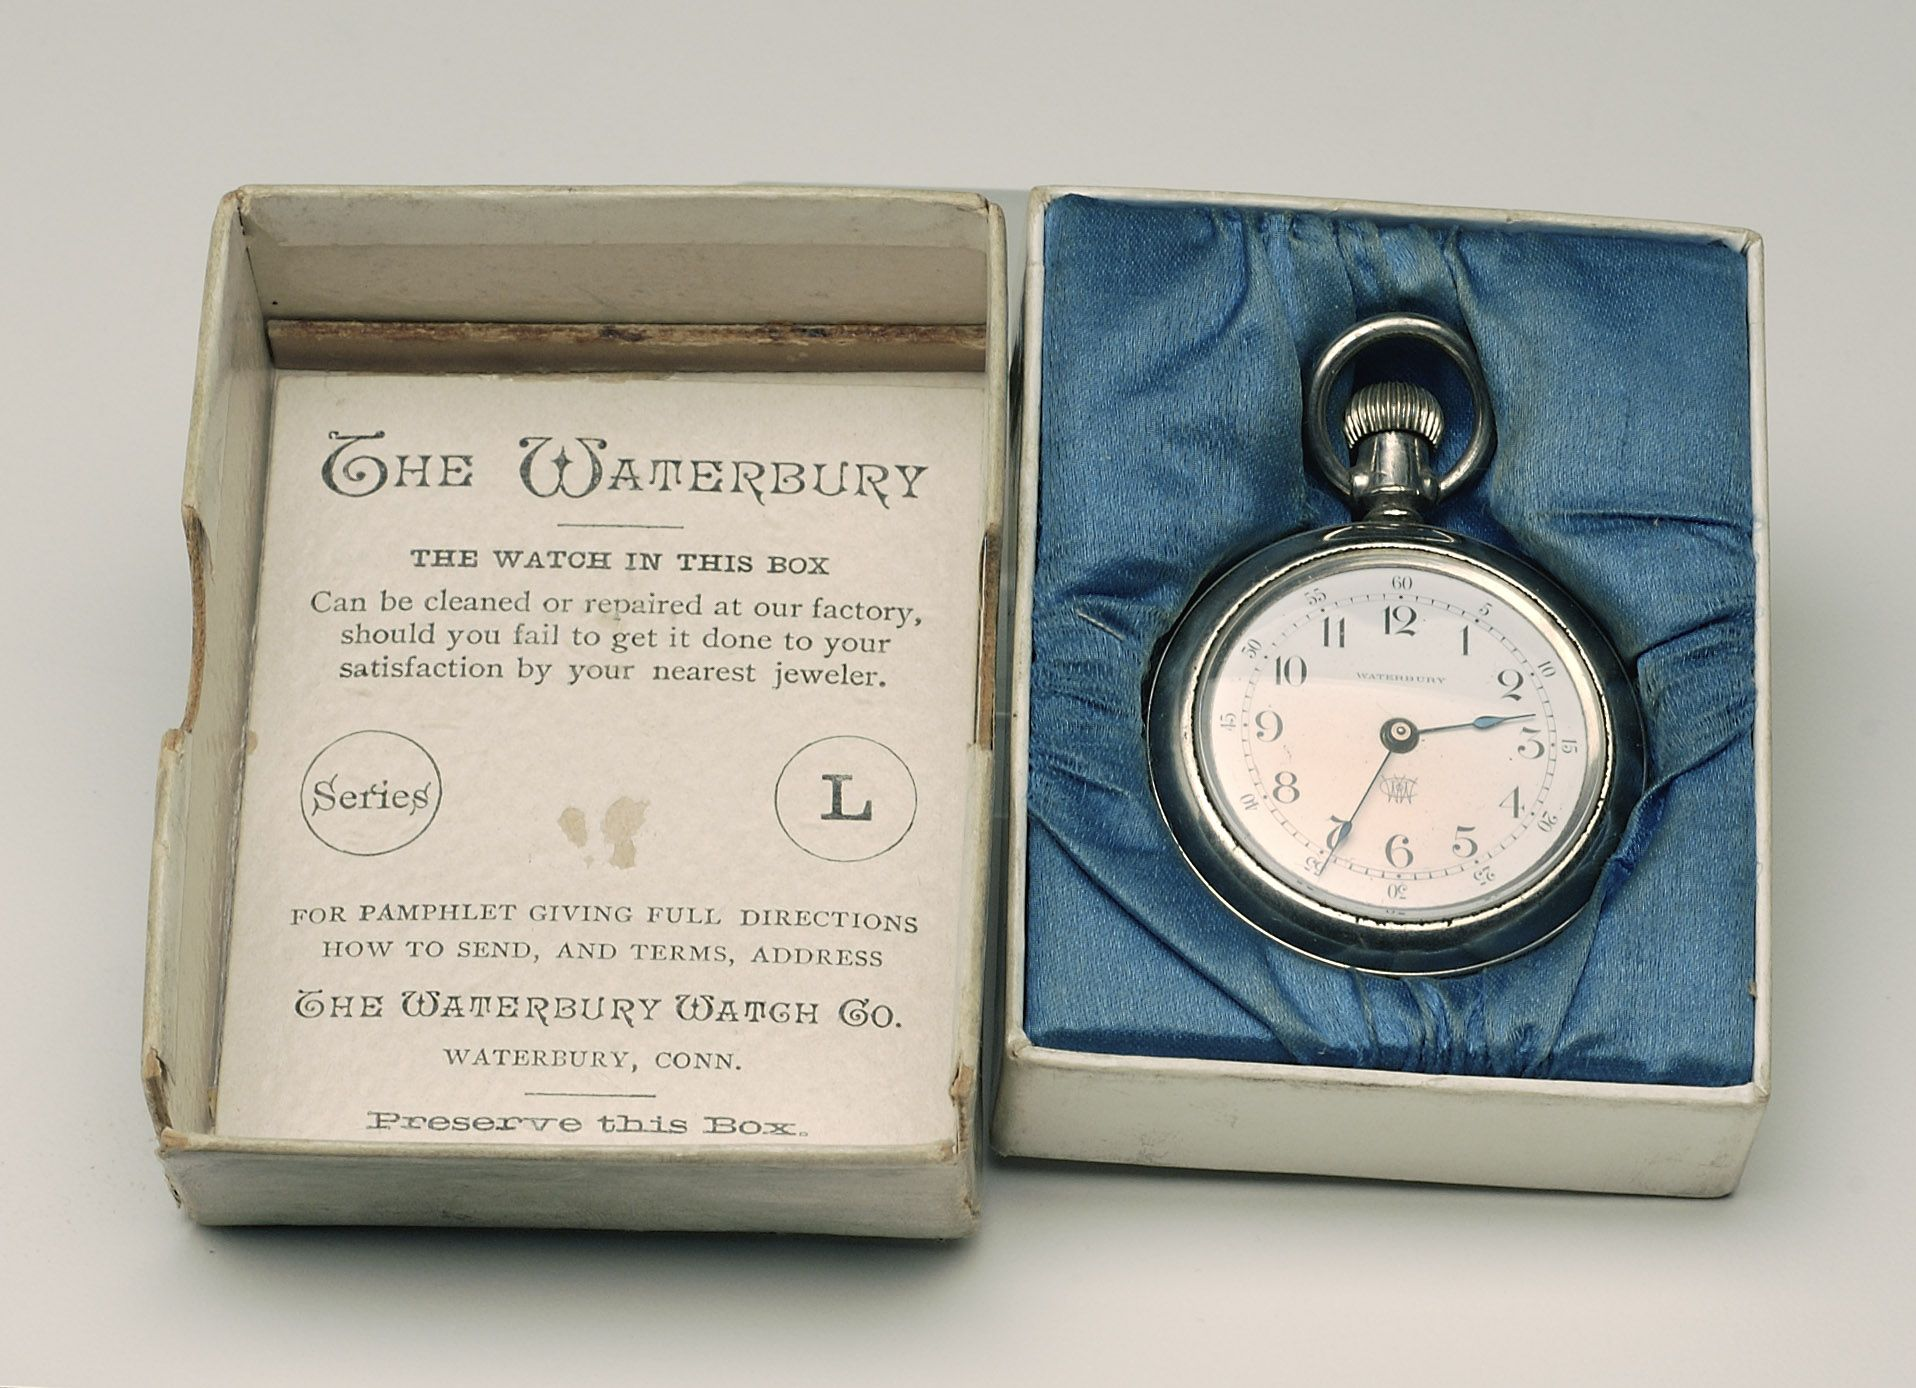 Chase brass and copper company addition turner construction company - The Waterbury Watch Company The Waterbury L Series With Sales Box 1888 History Exhibit